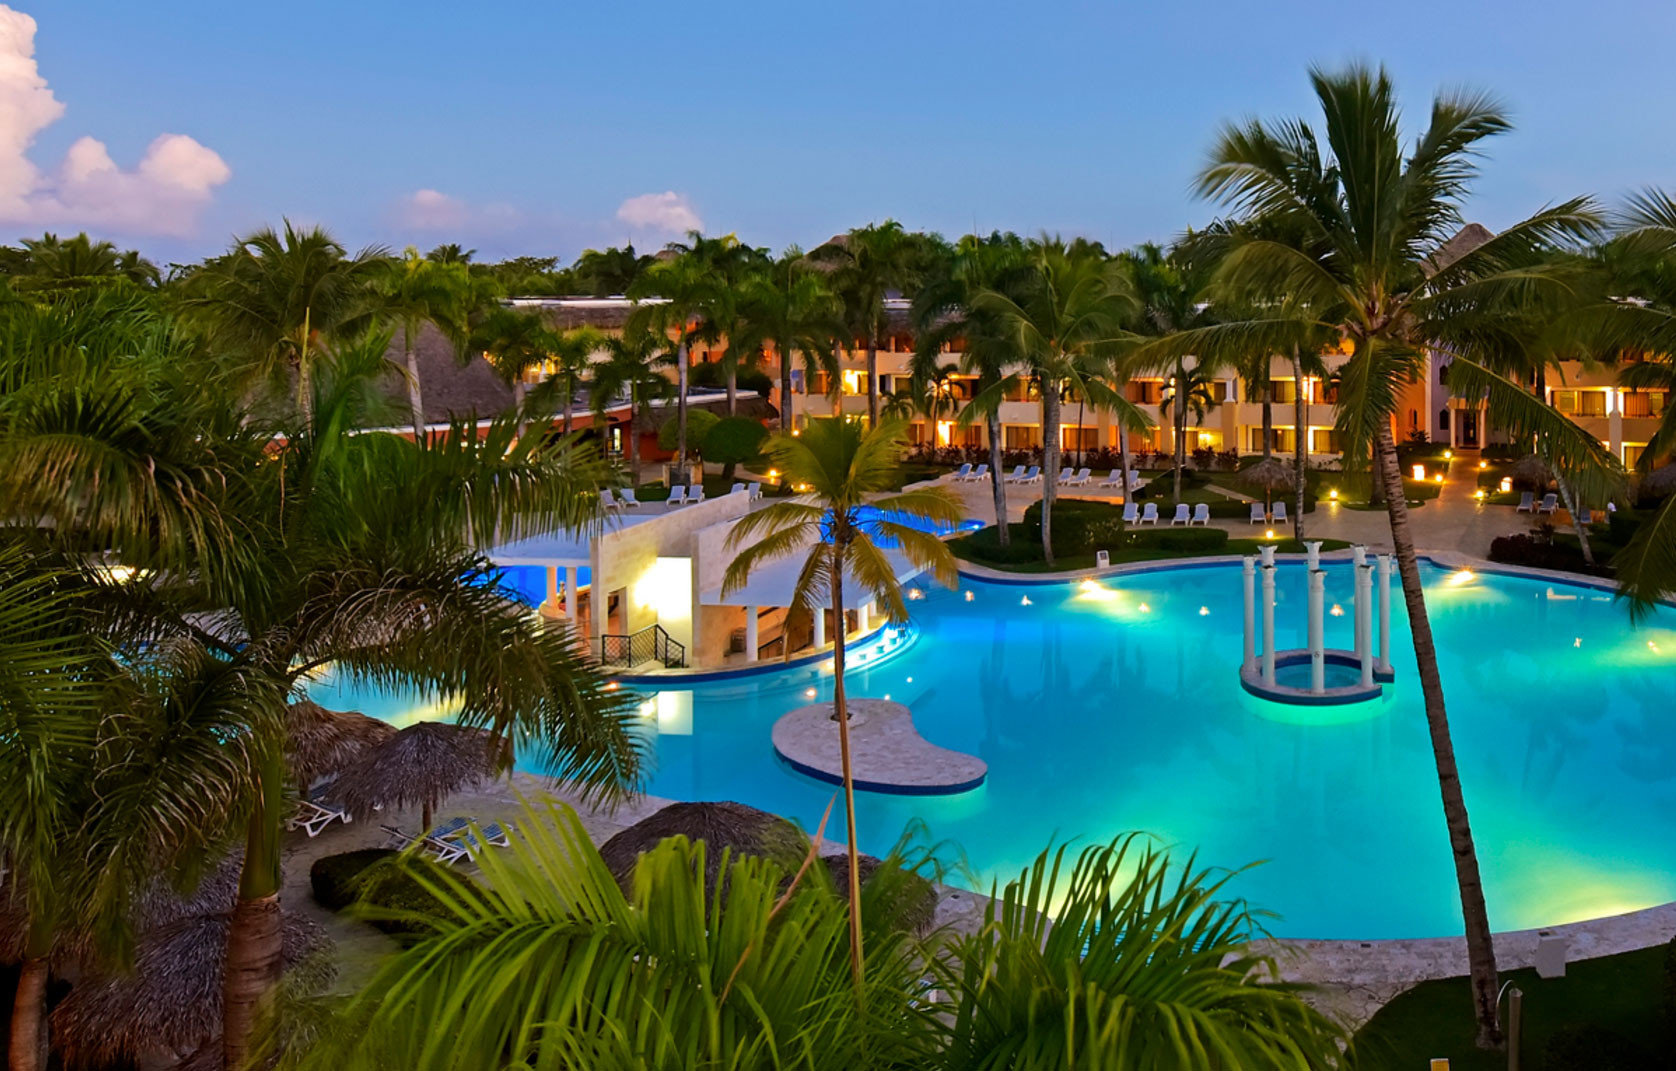 tree sky swimming pool leisure Resort palm property Villa colorful lined day